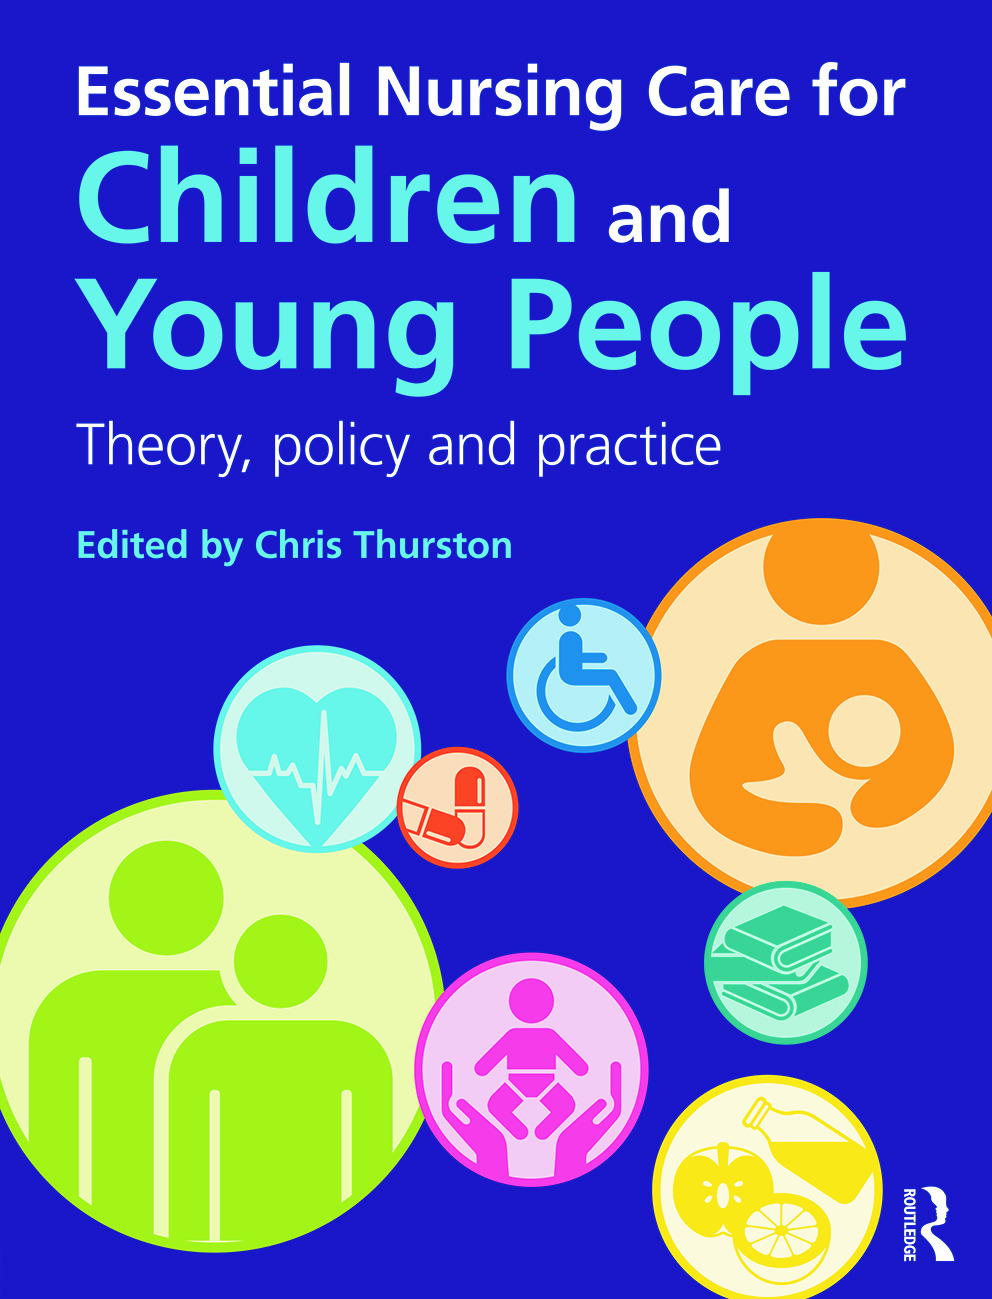 Essential Nursing Care for Children and Young People: Theory, Policy and Practice book cover